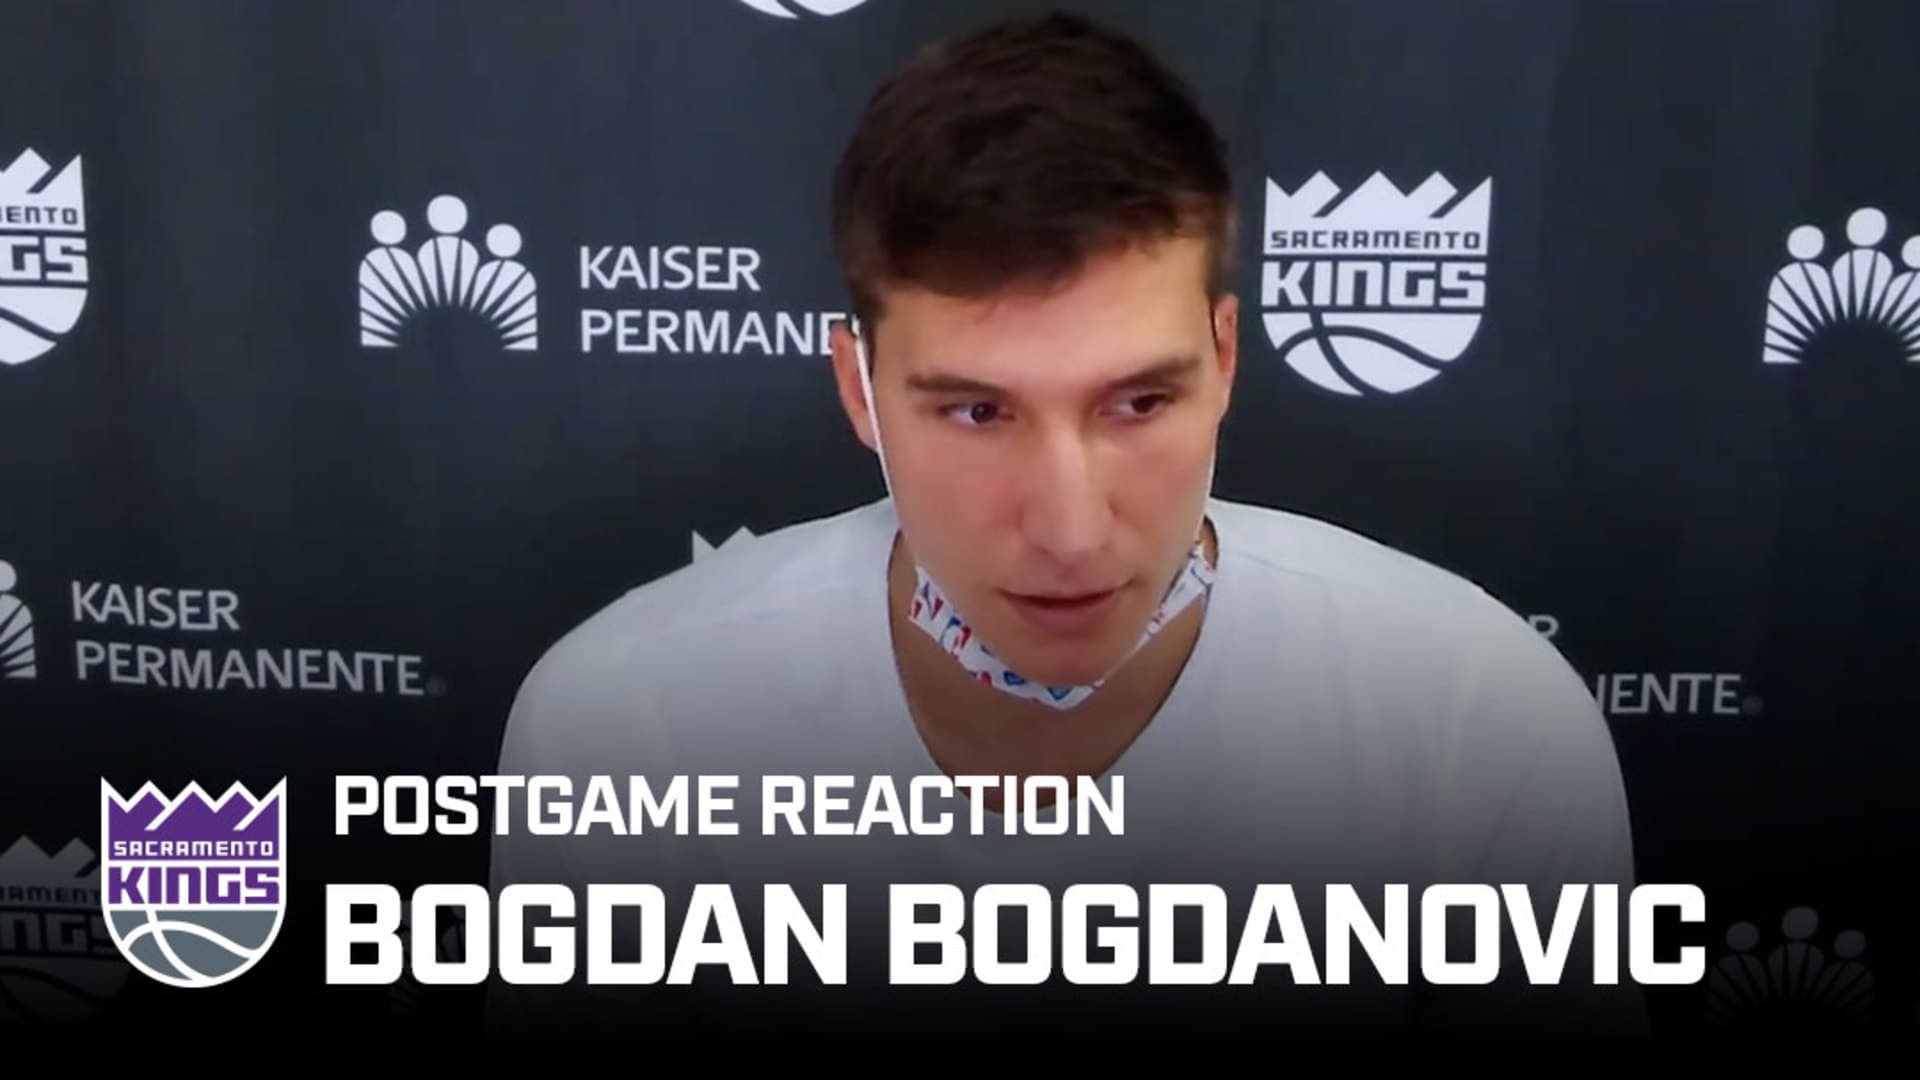 'We Have to Keep Our Heads Up' | Bogdan Bogdanovic Postgame Reaction 7.31.20